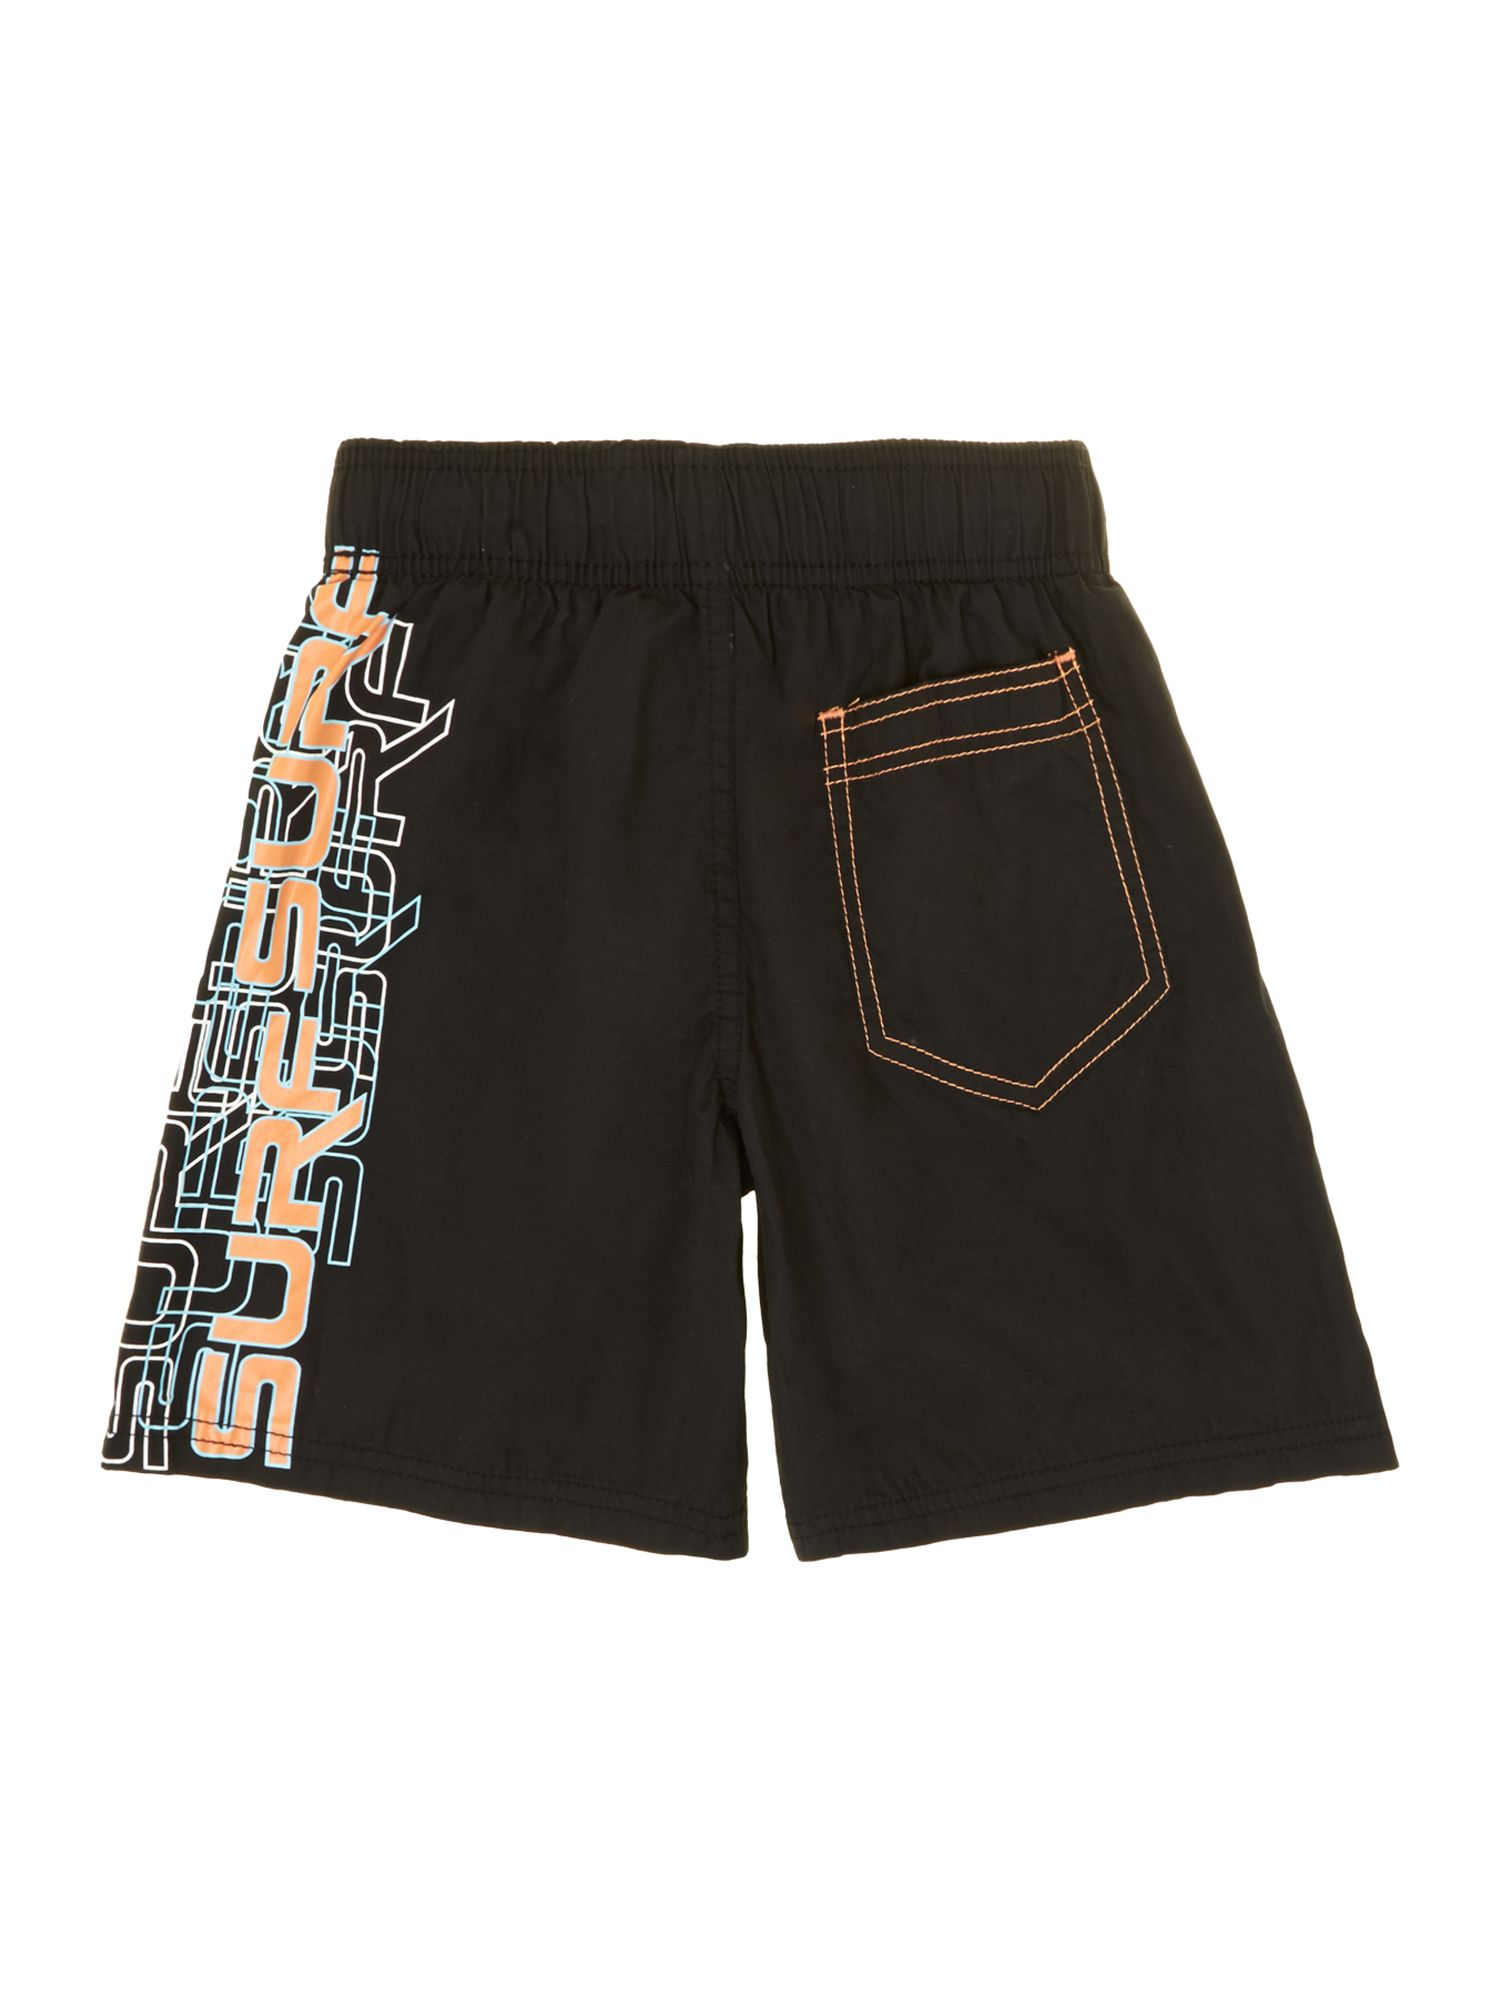 Boys surf swim shorts